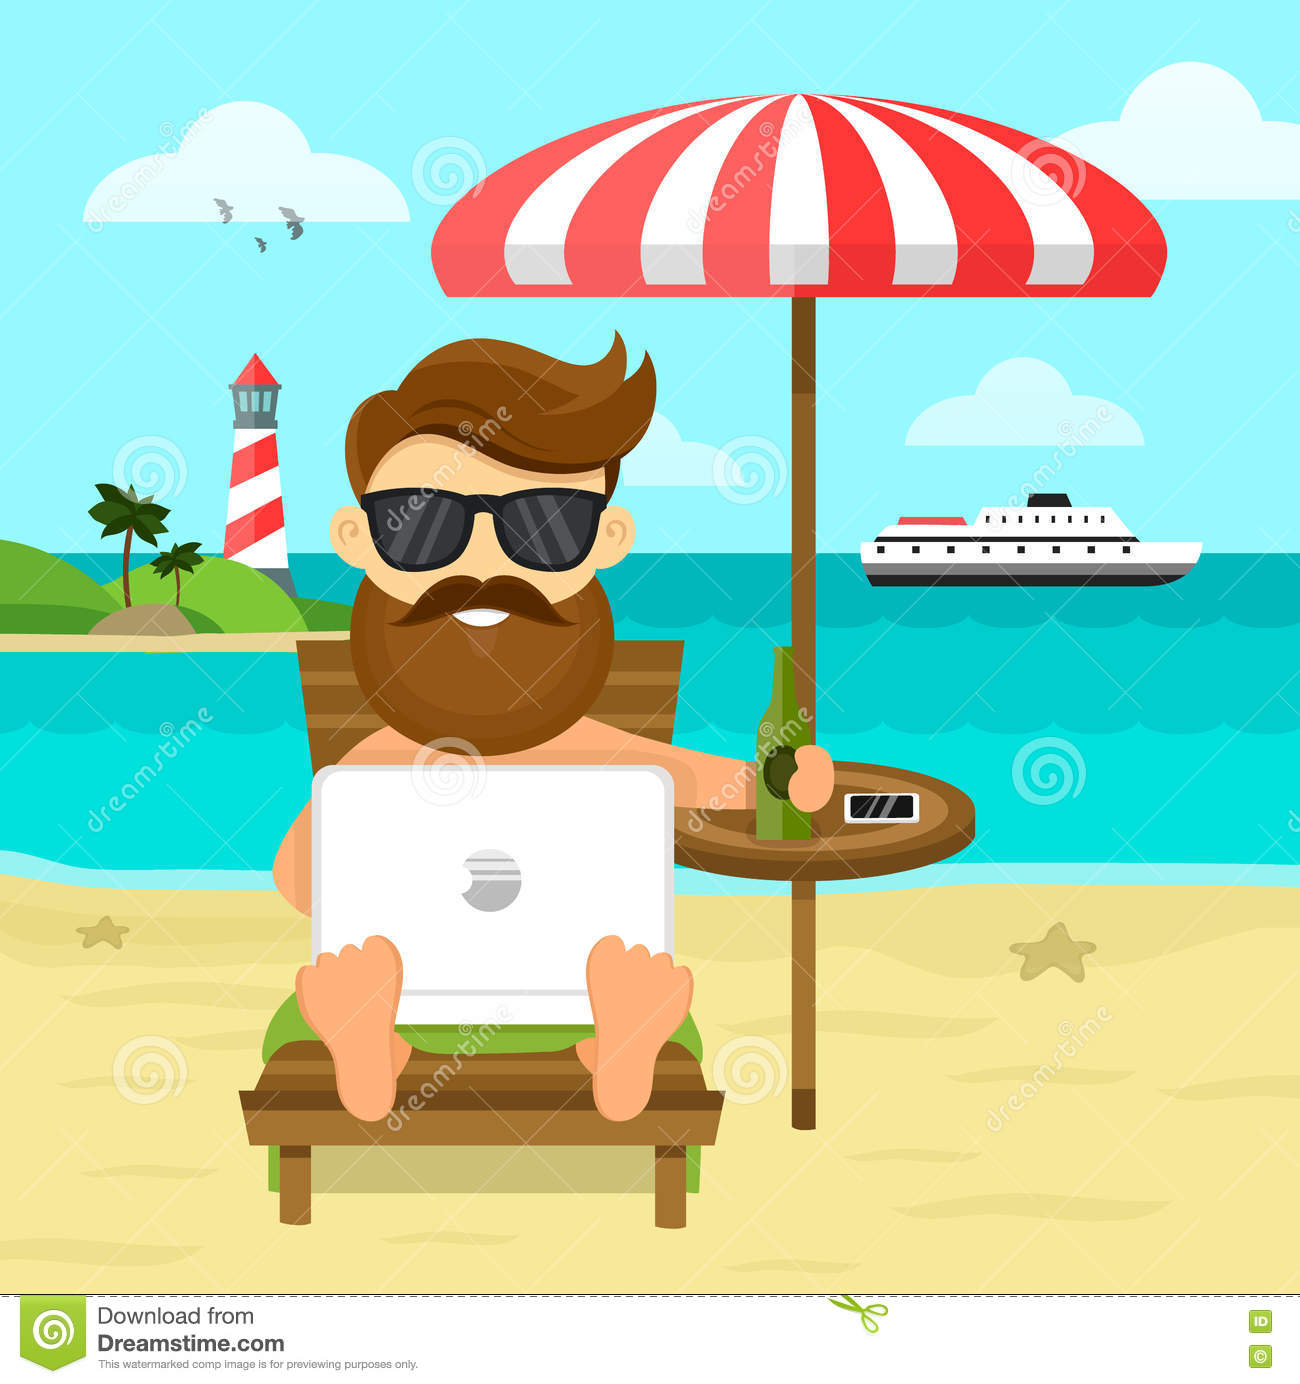 On the beach freelance Work & Rest flat illustration. Business Man Freelance Remote Working Place Businessman In